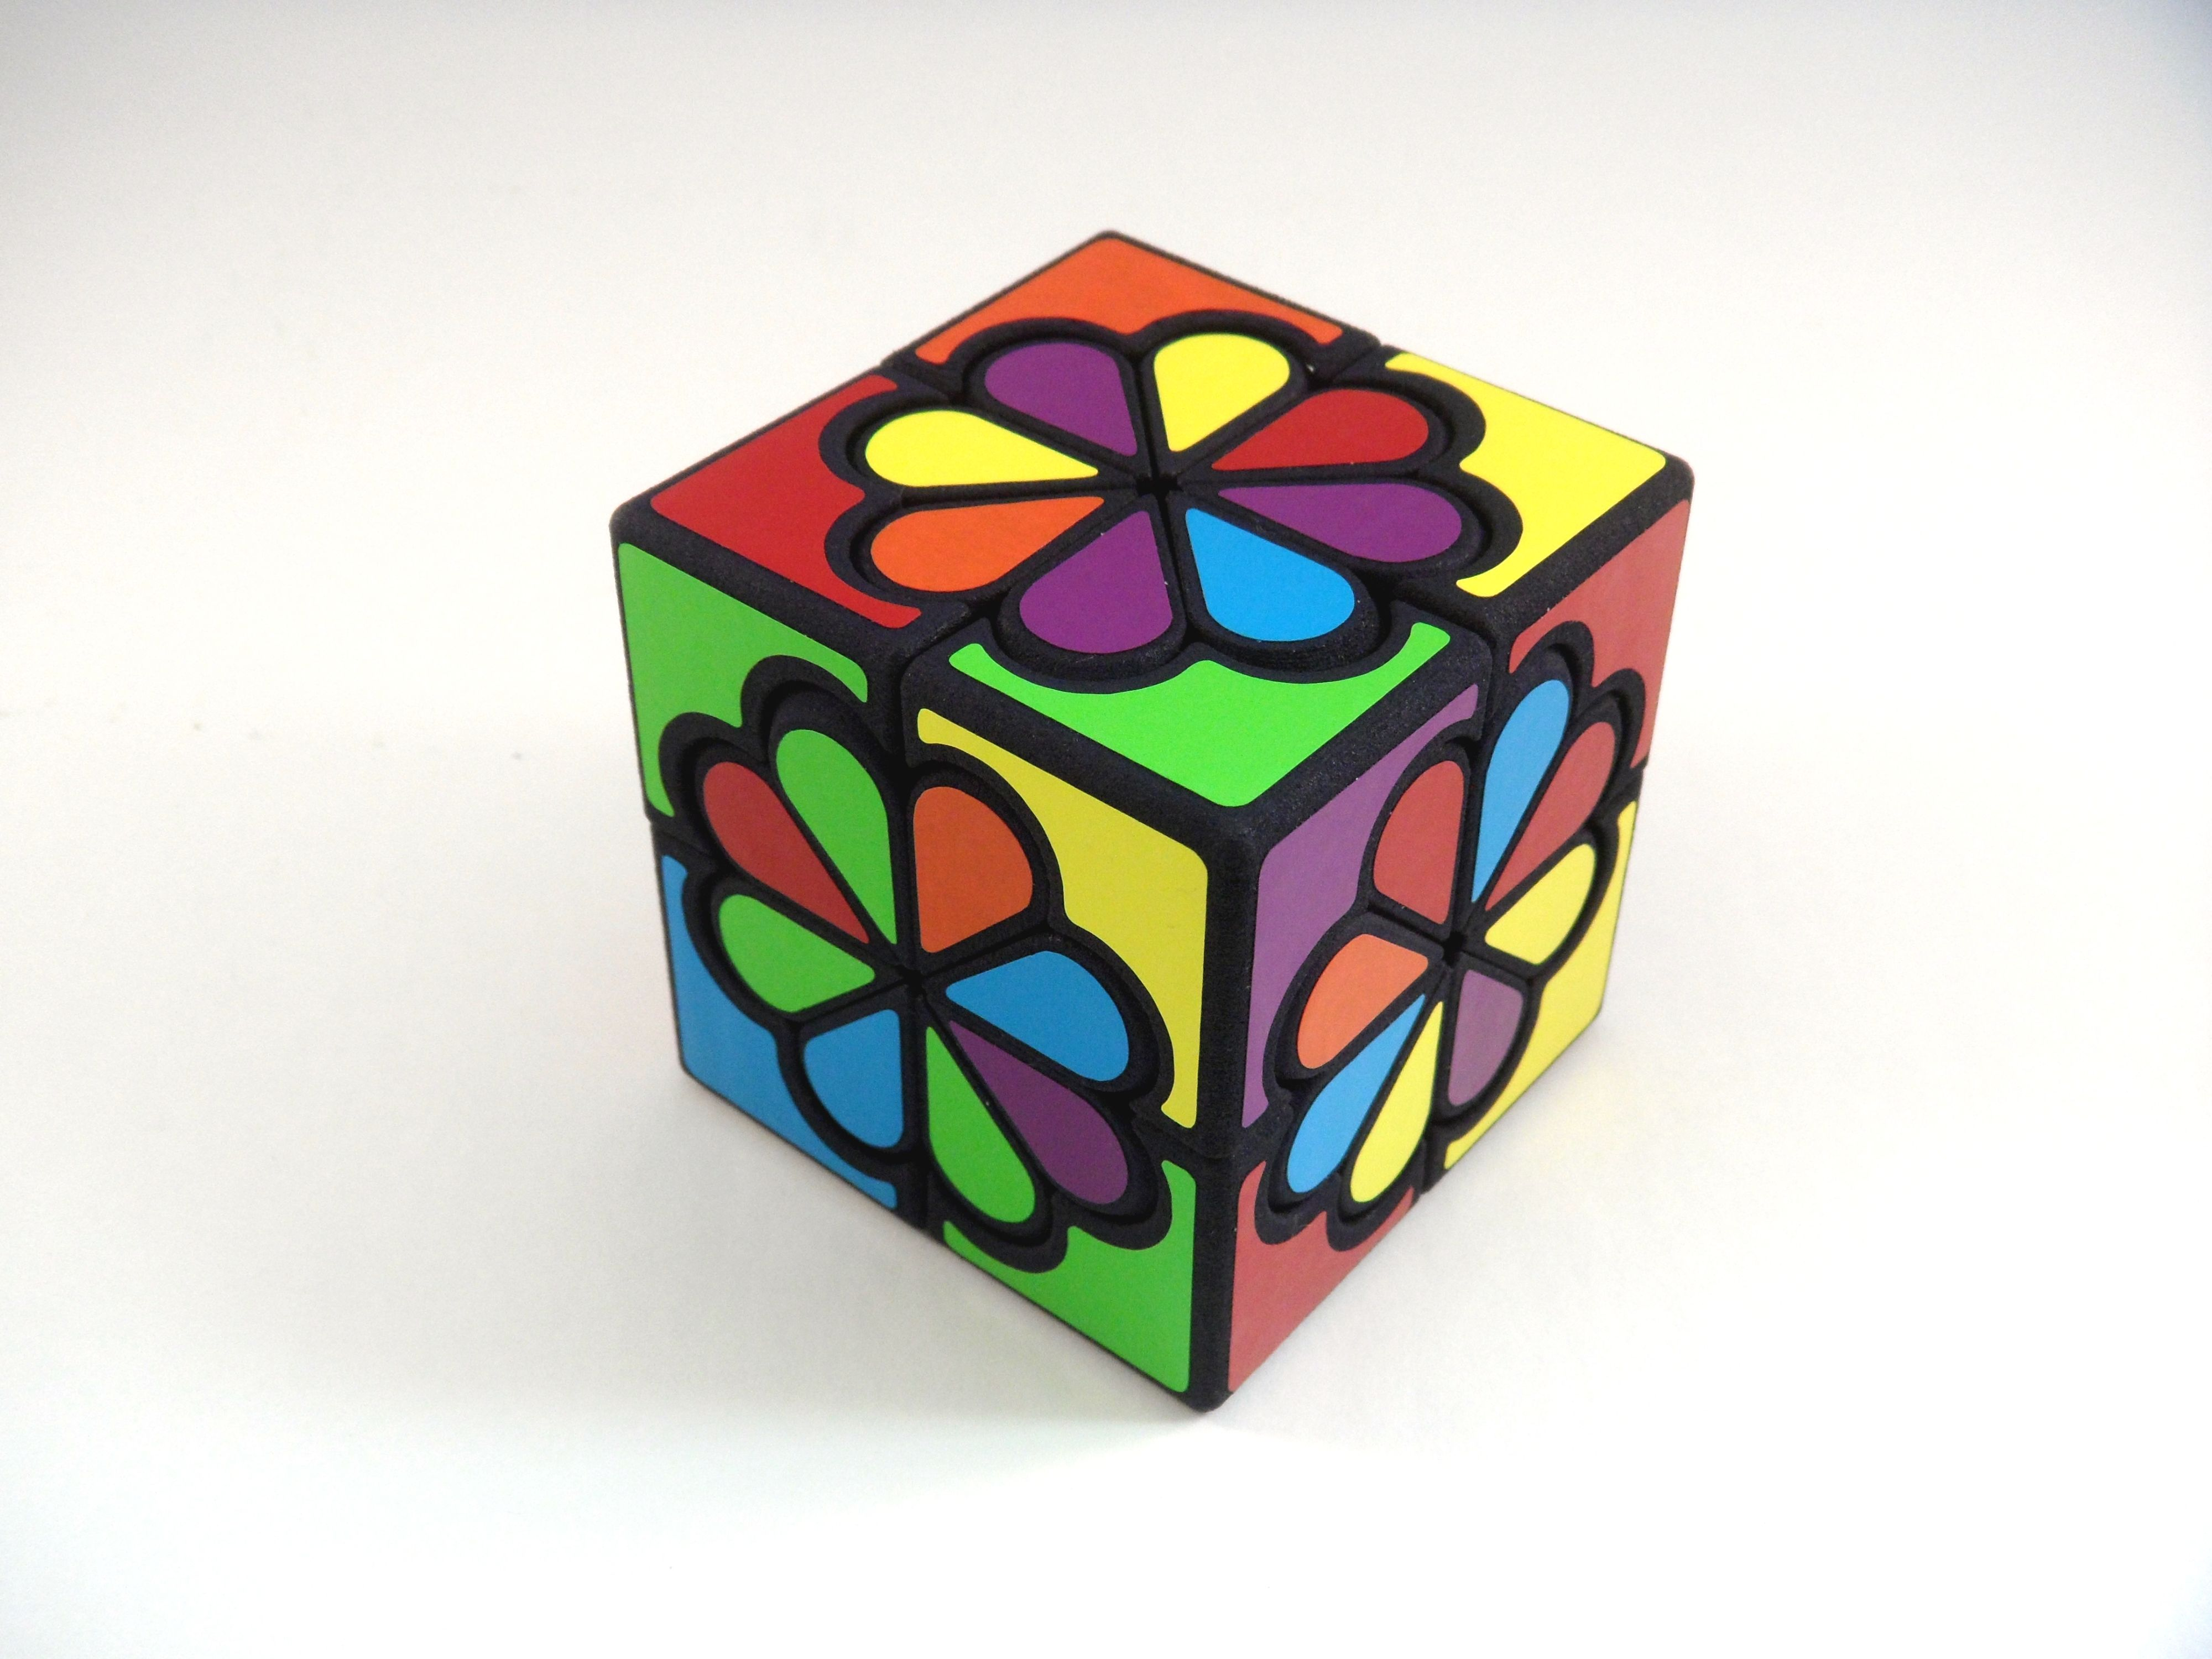 3d printing puzzles in